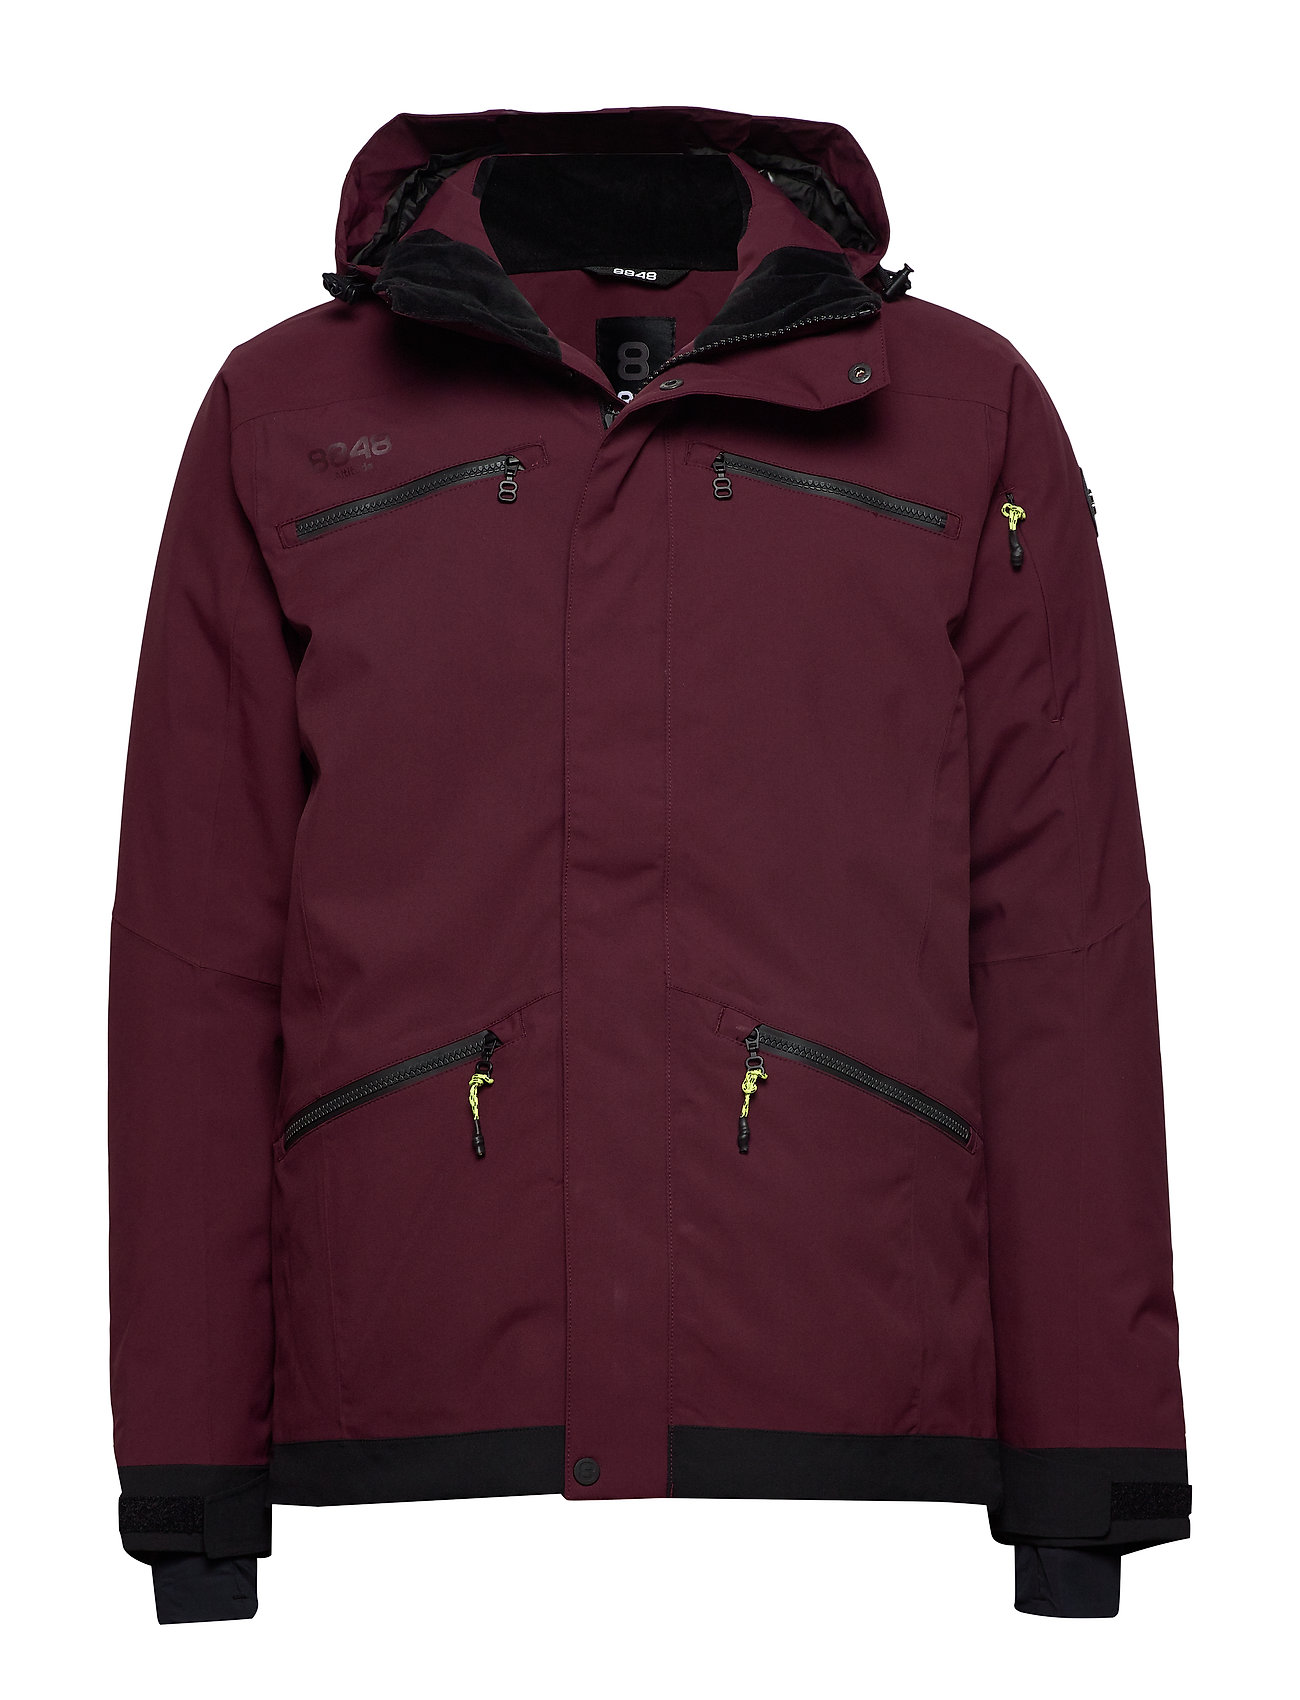 8848 Altitude Fairbank Jacket - AMARONE